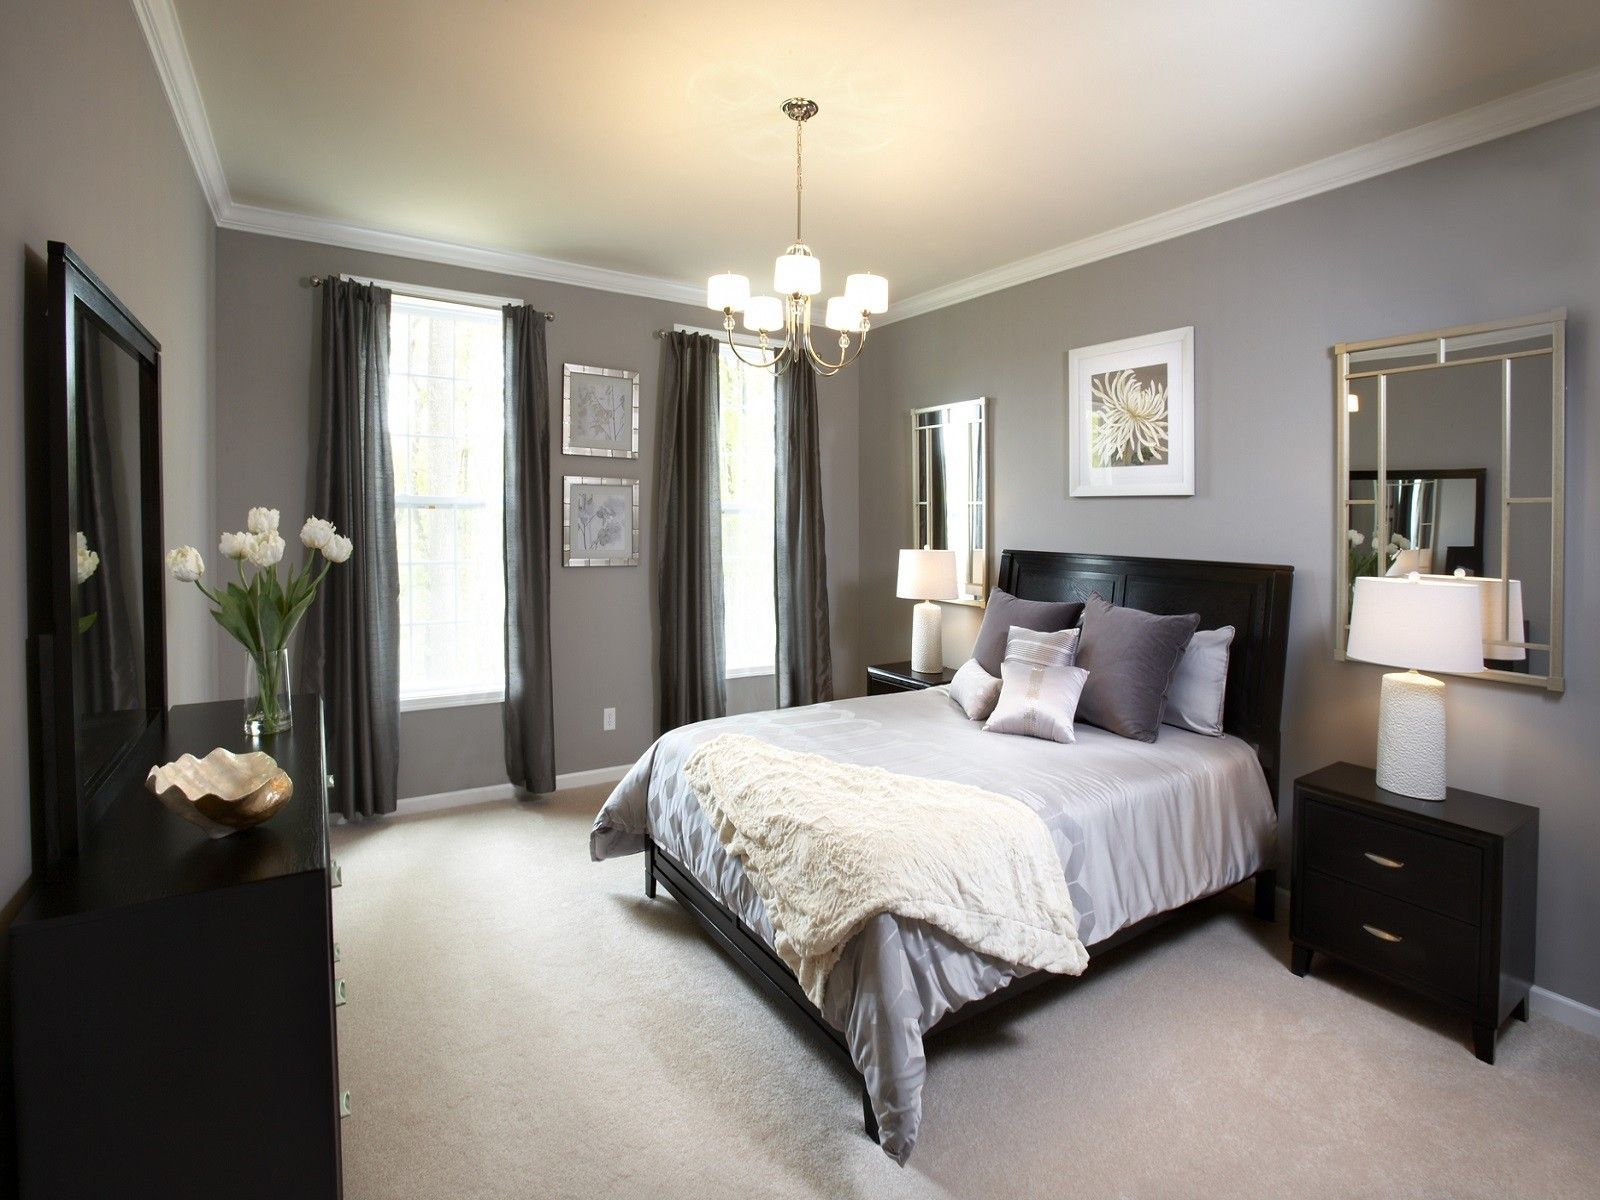 Black Furniture Bedroom Ideas - Prodazharoz.com